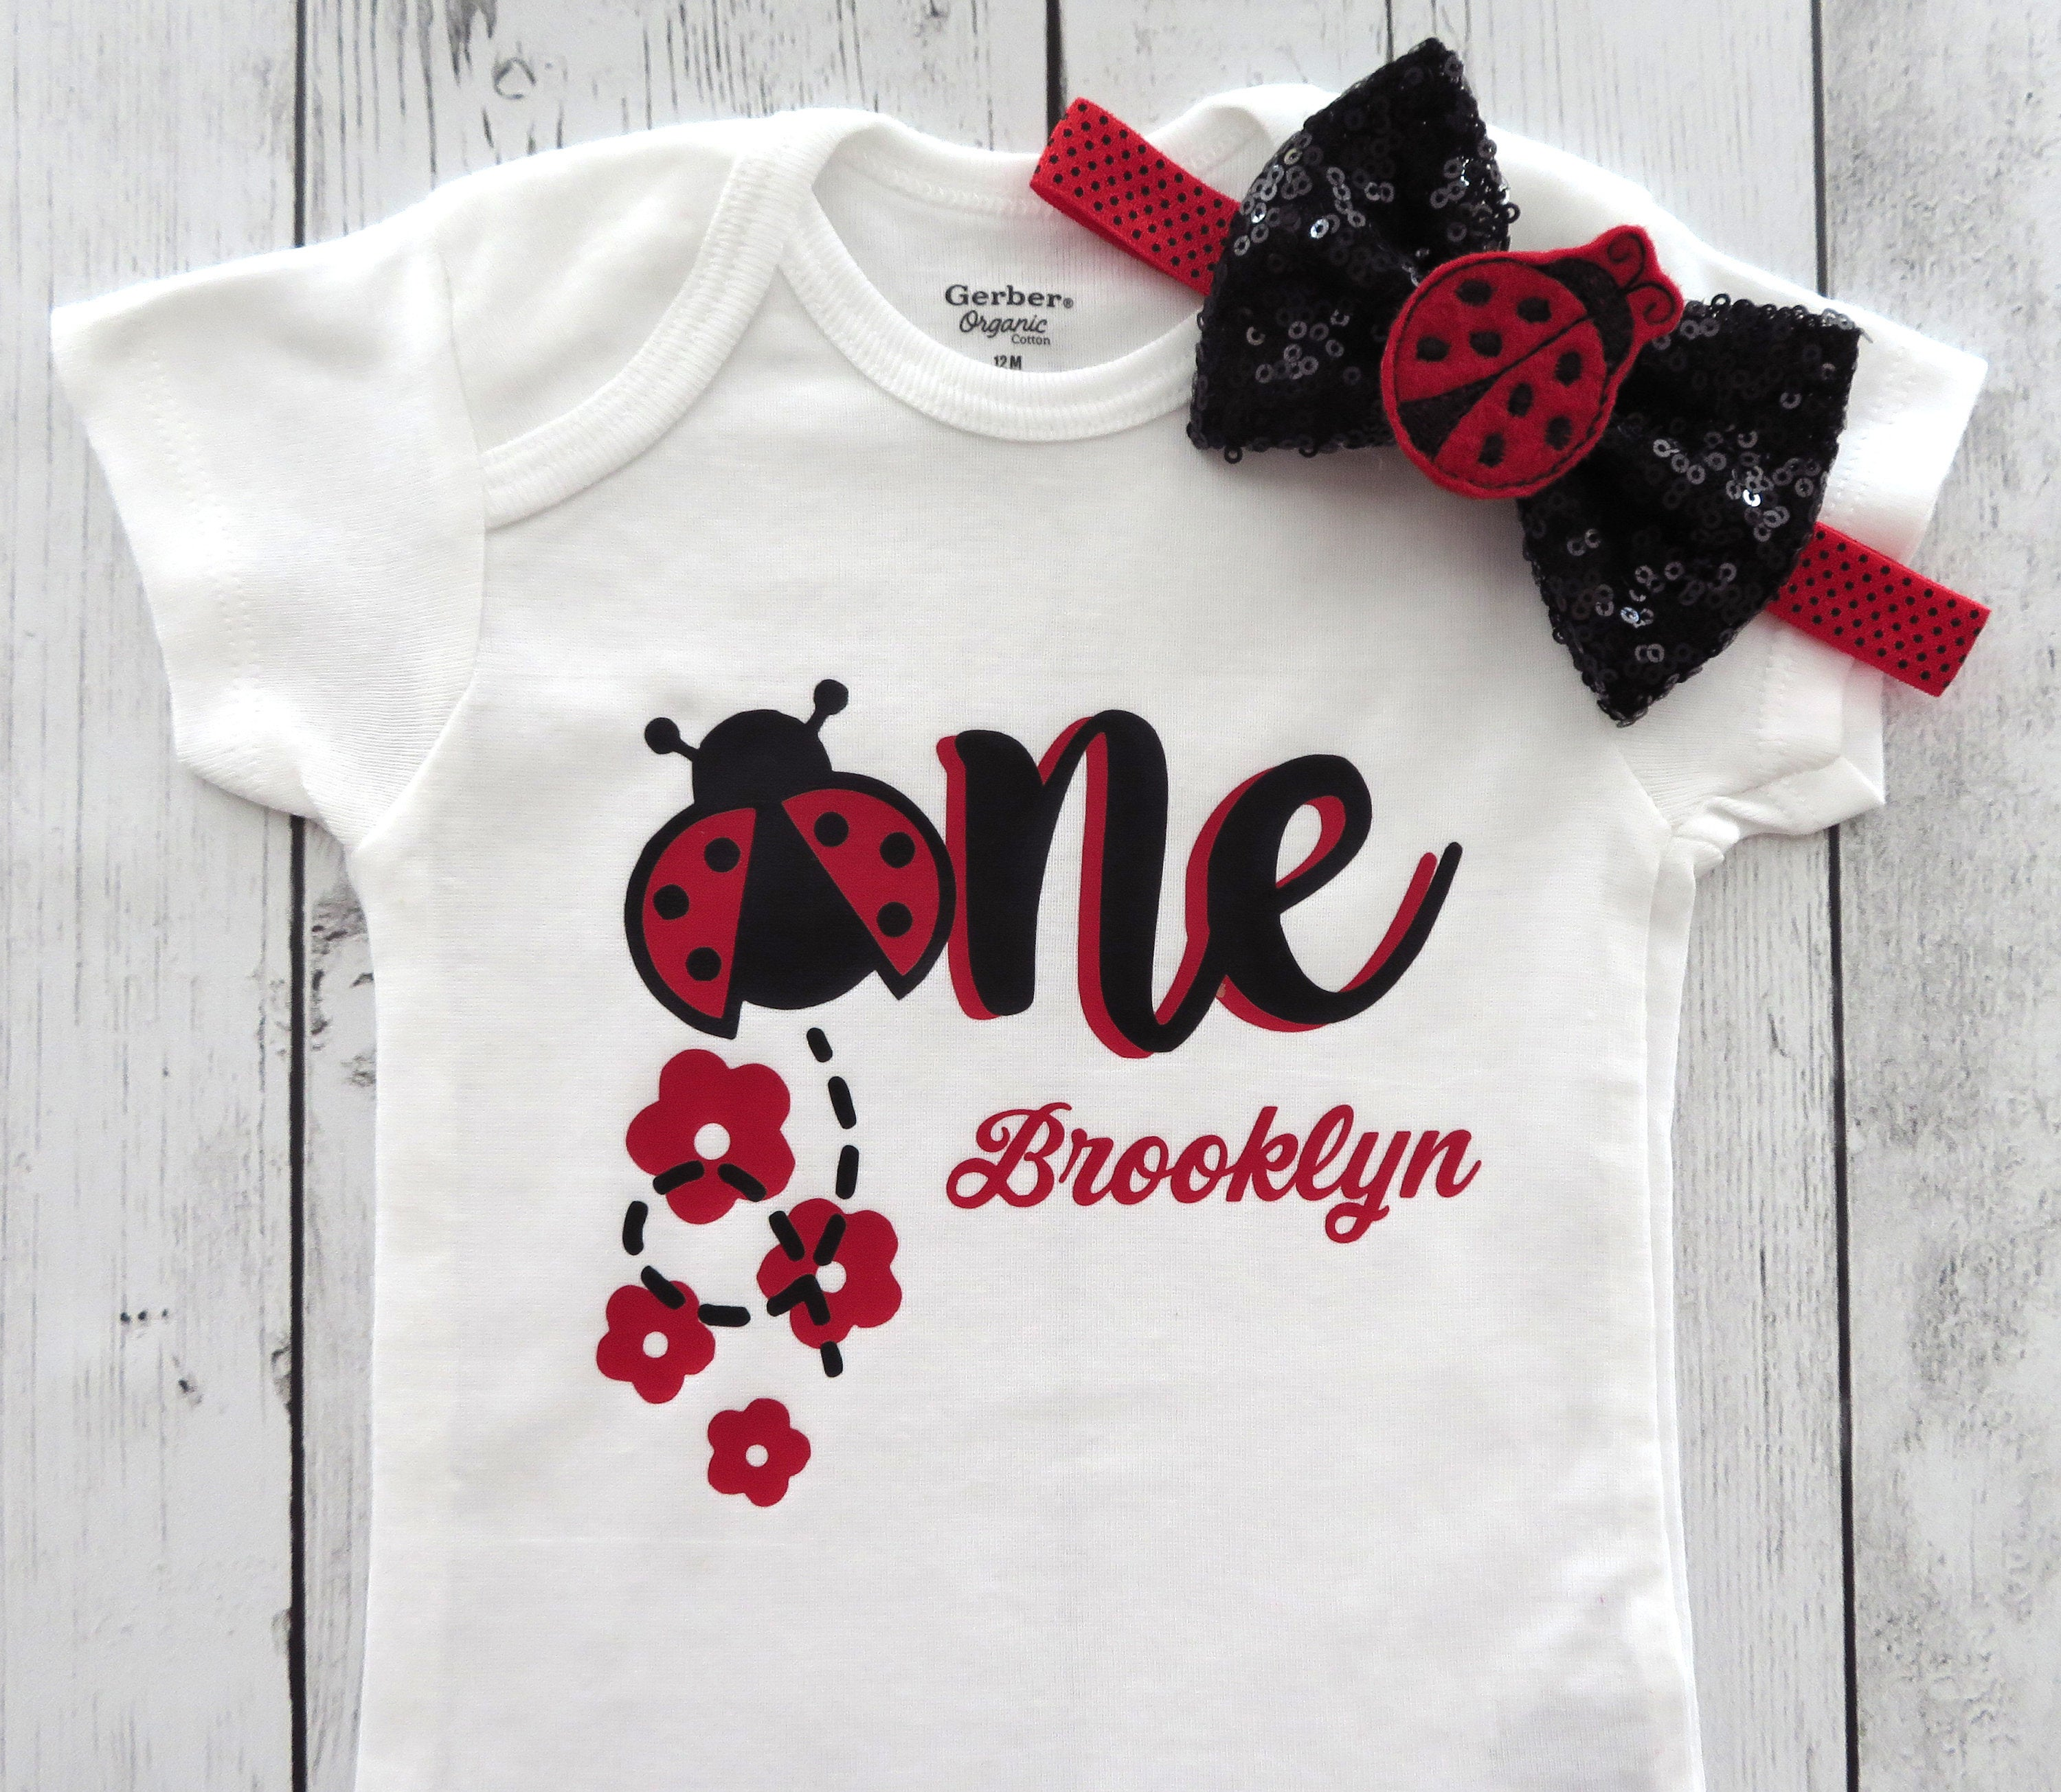 Ladybug First Birthday Onesie in red and black - 1st birthday outfit girl, ladybug one, ladybug birthday party, ladybug shoes, 1st bday girl